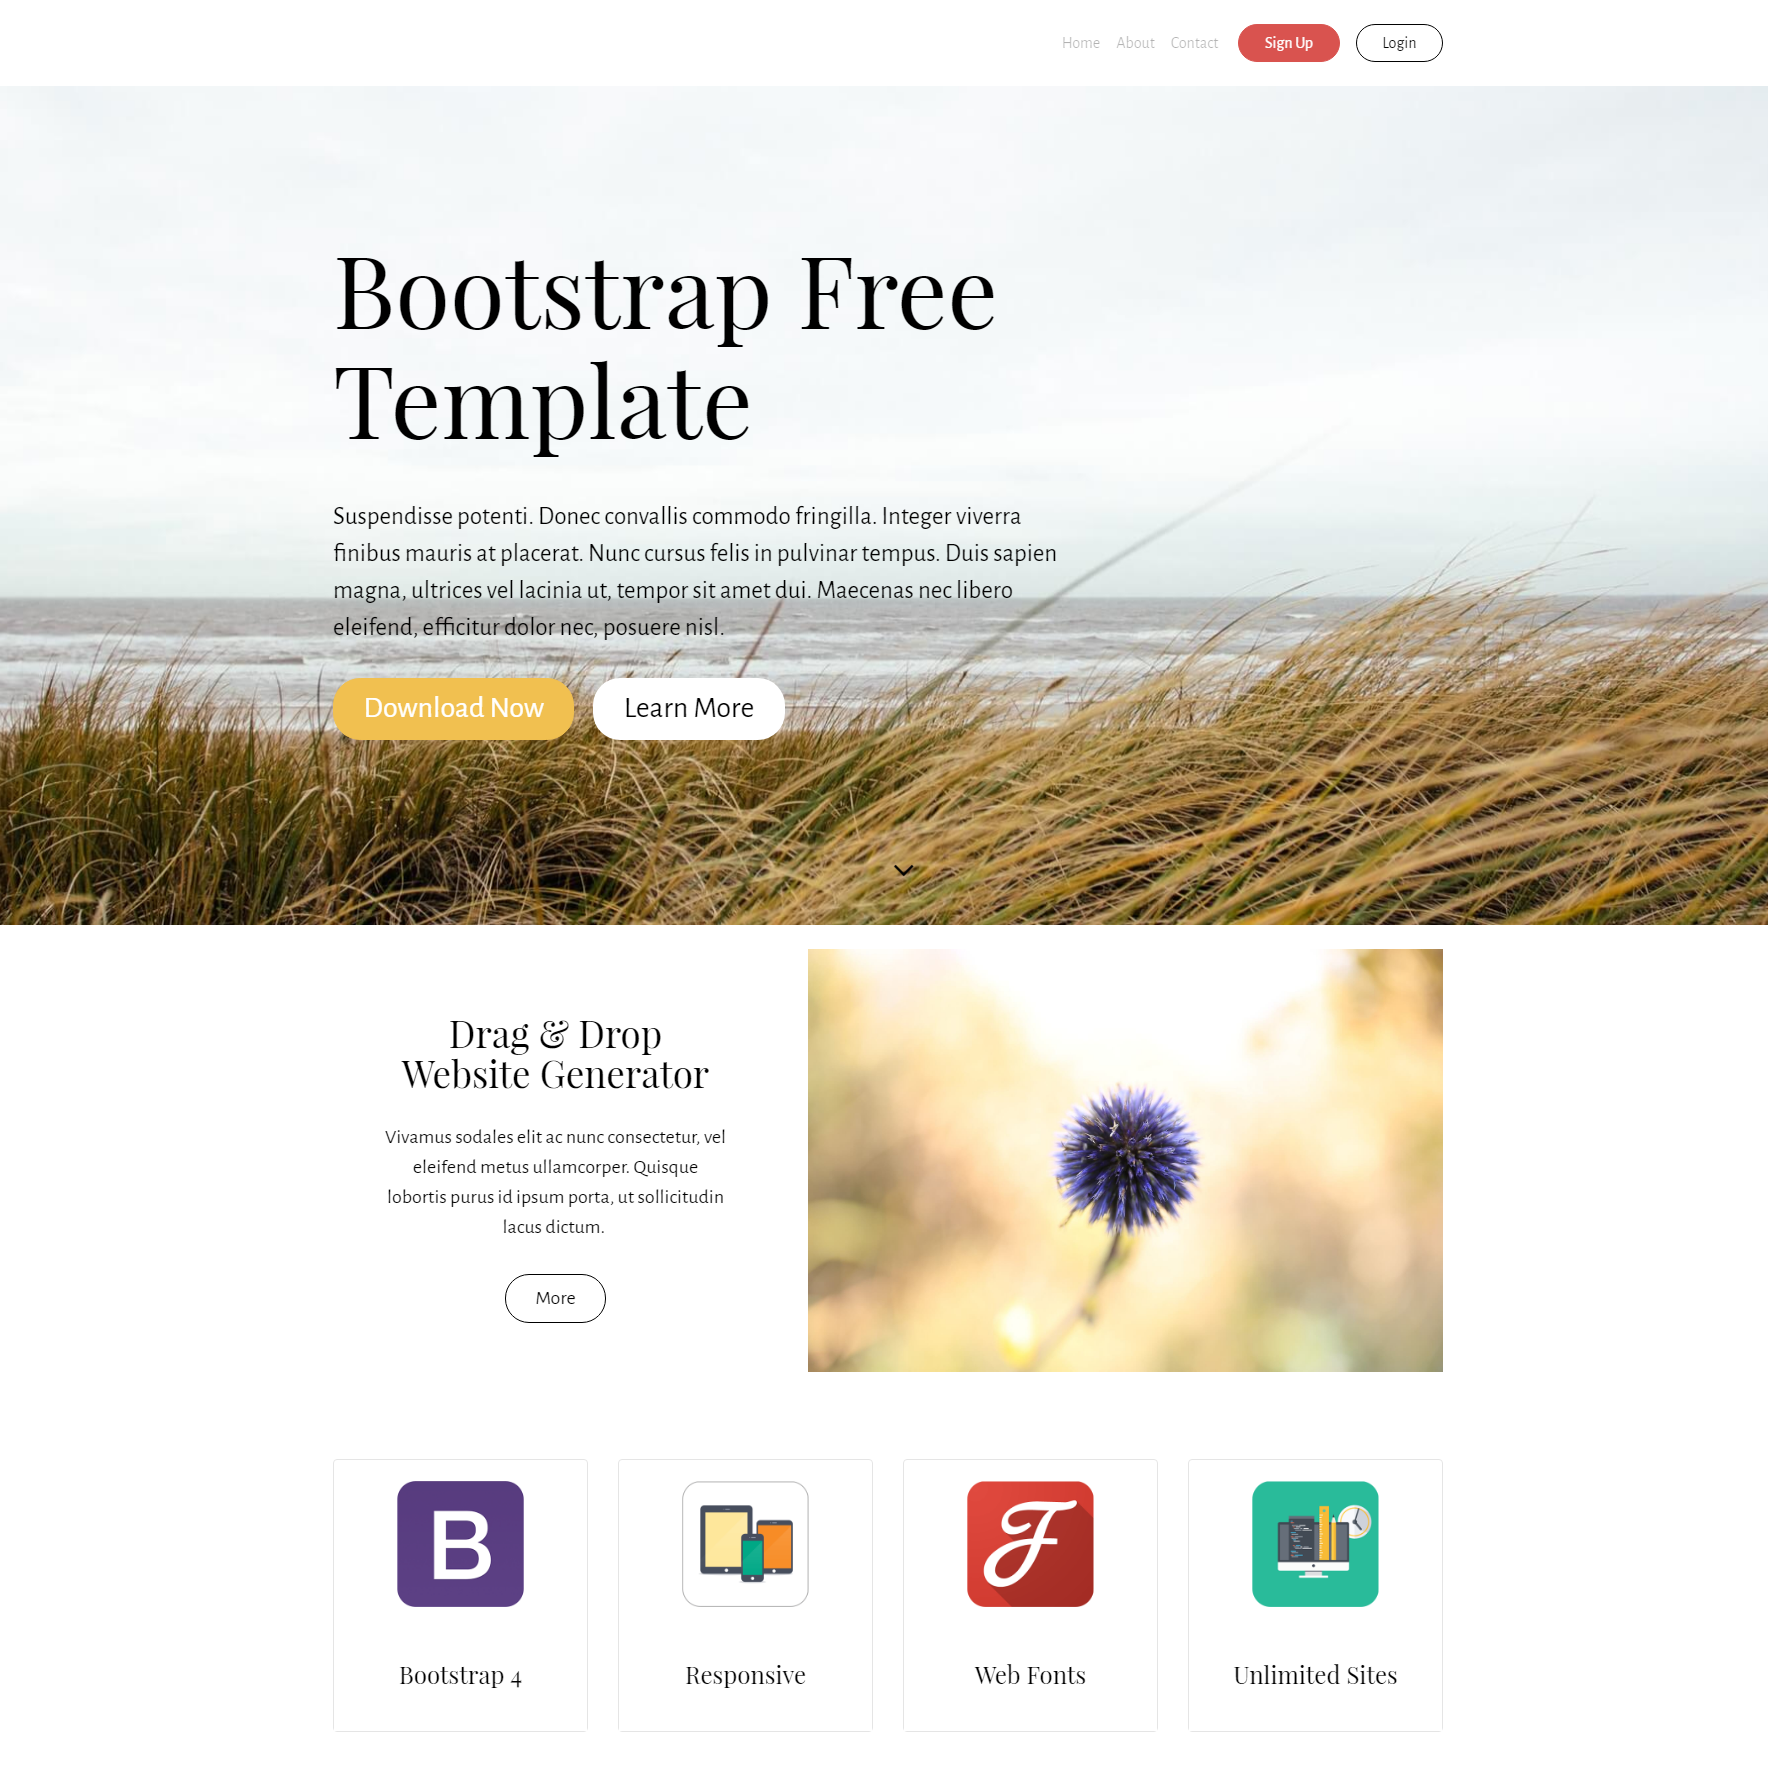 Free Bootstrap PurityM Templates